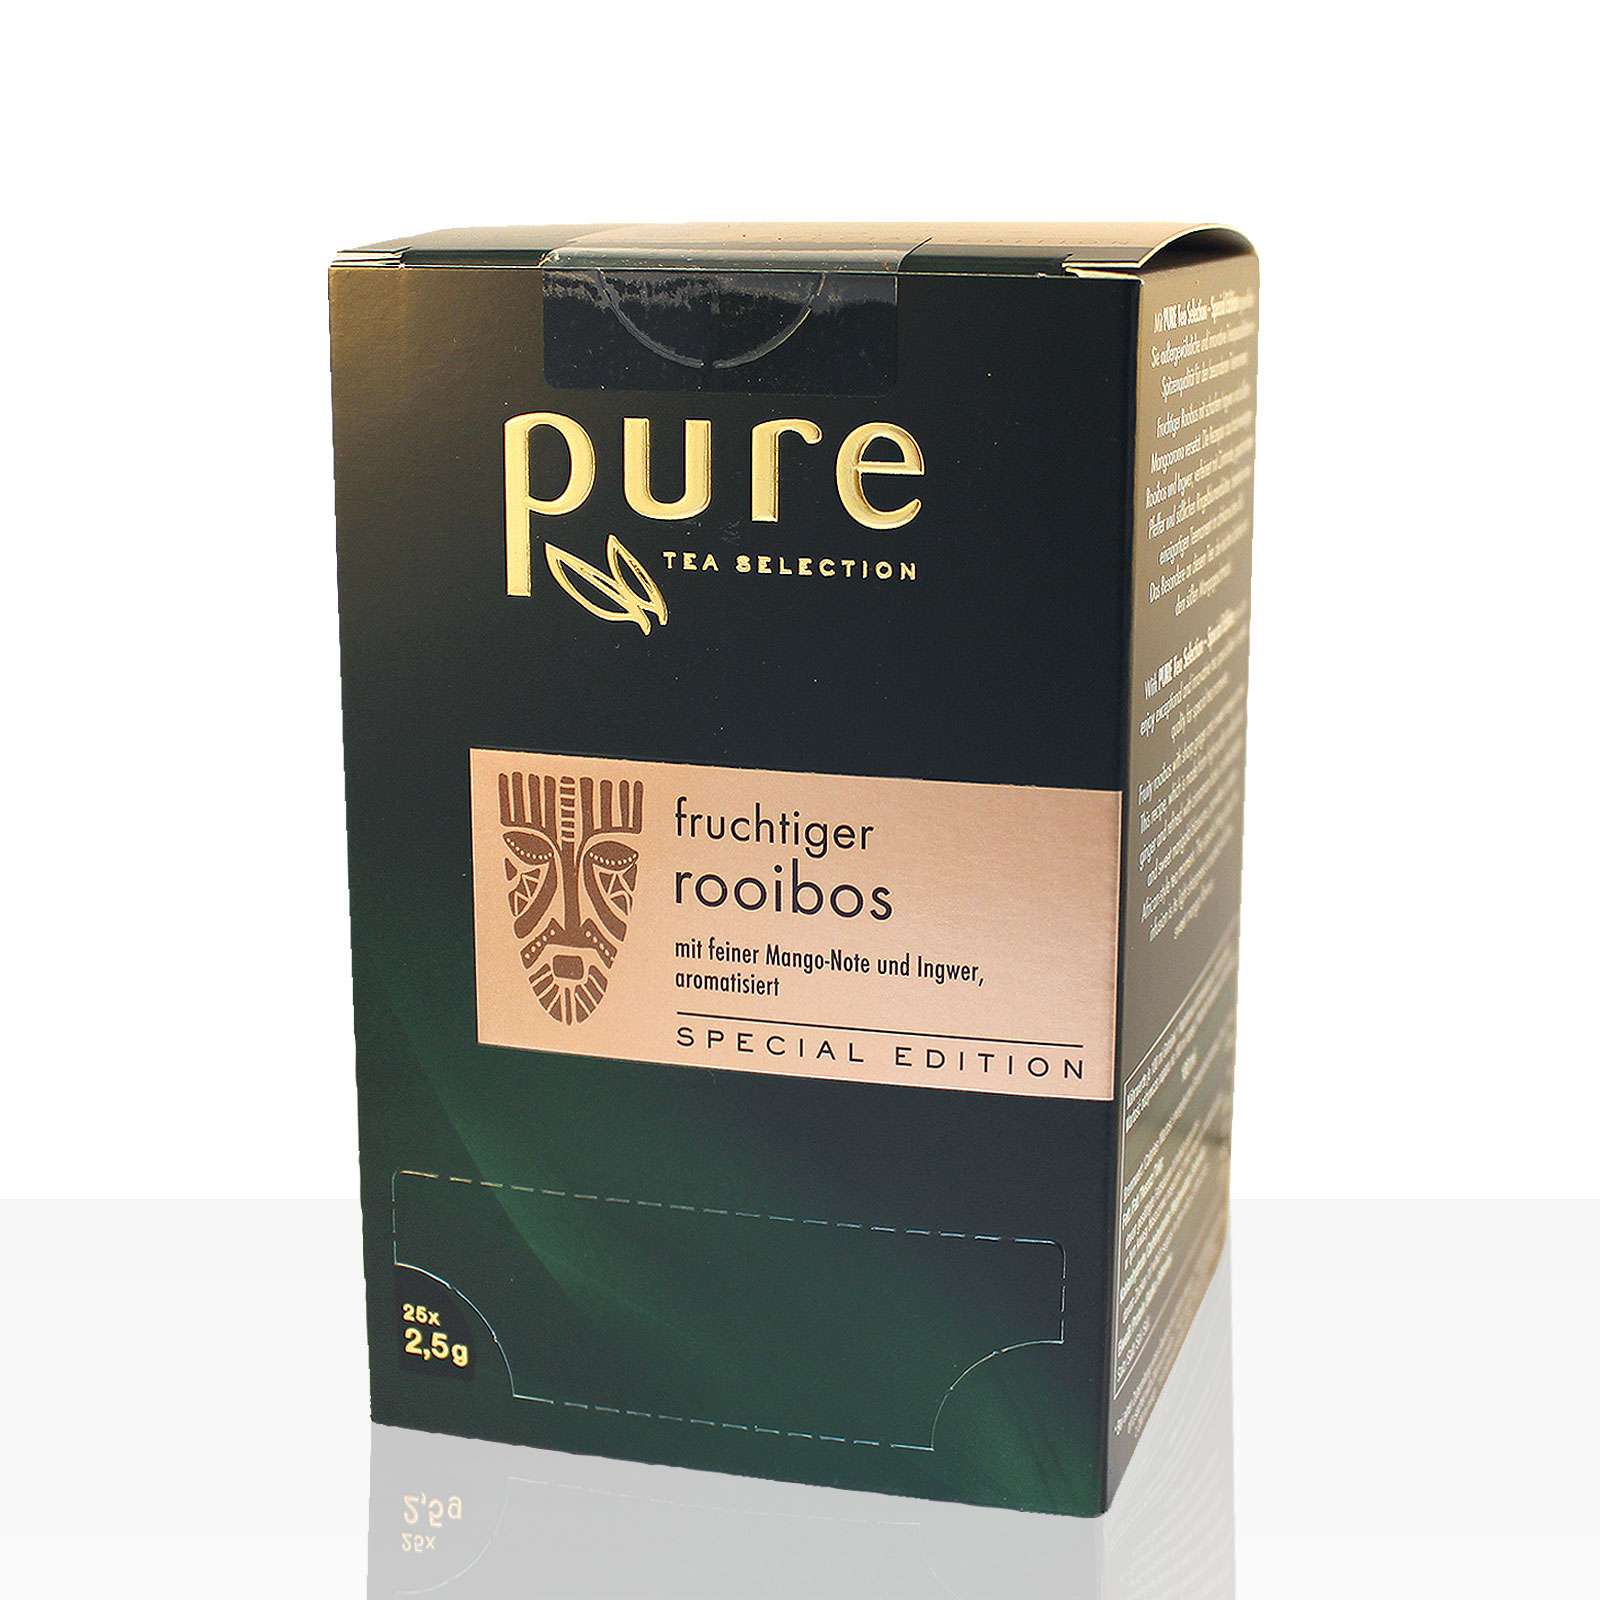 Pure Tea fruchtiger Rooibos 25 x 2,5g Tee-Beutel, Special Edition